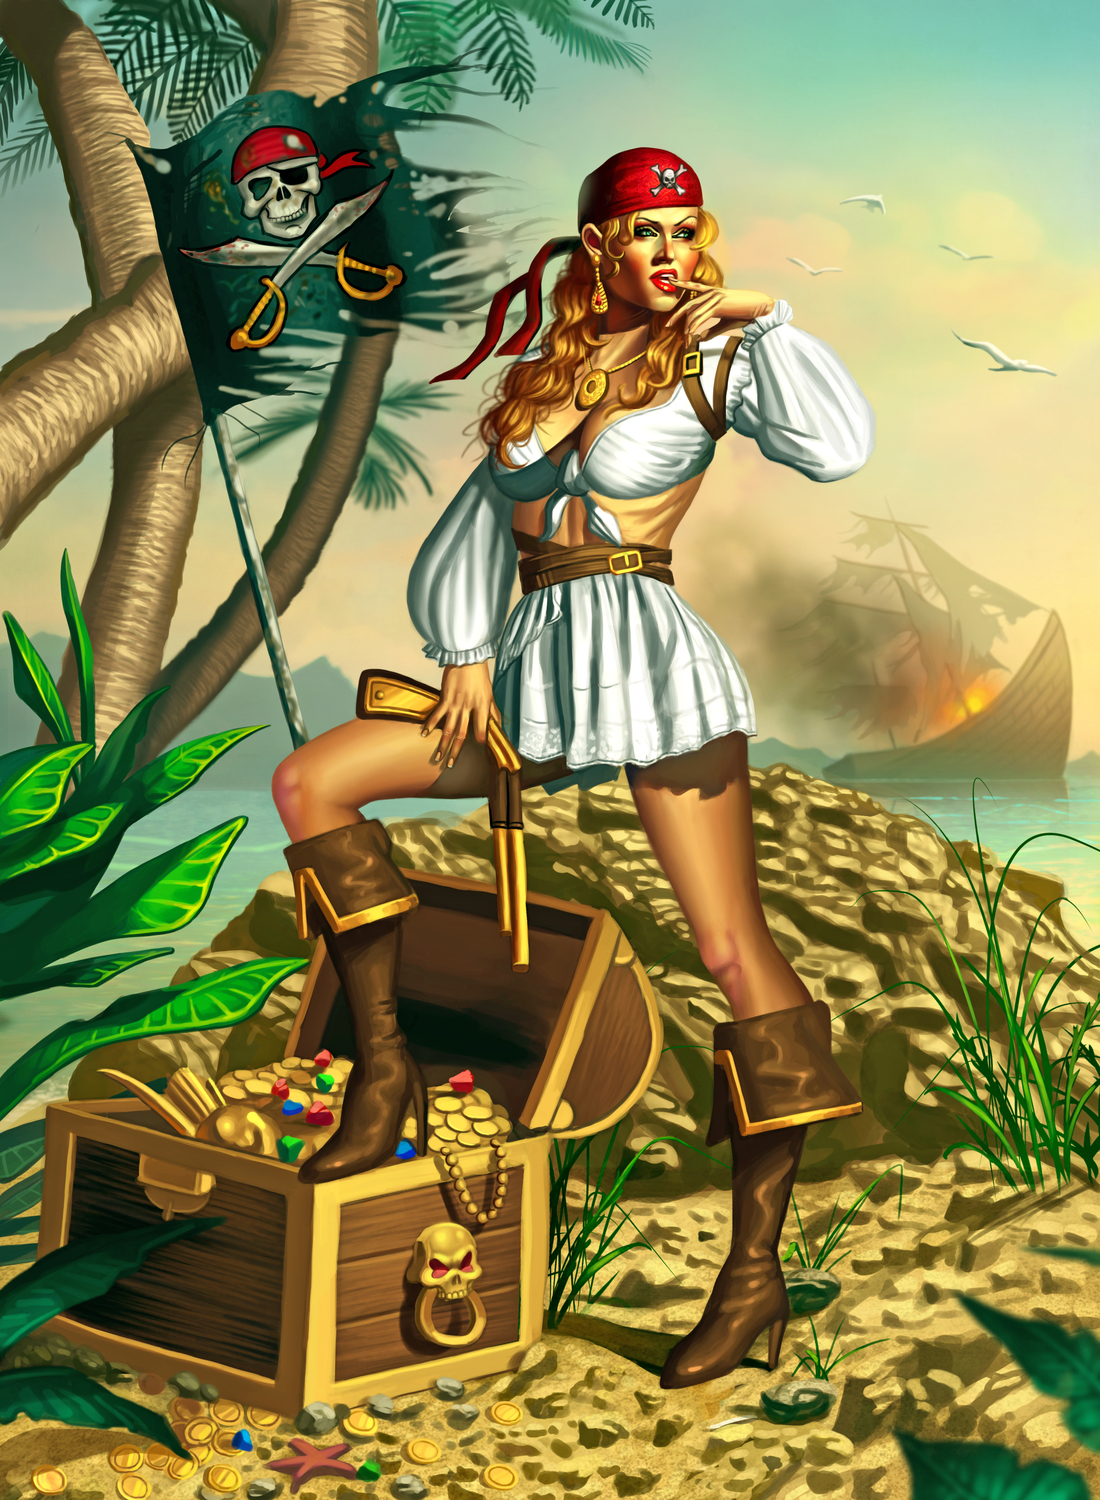 Pirate Girl Artwork by George Patsouras